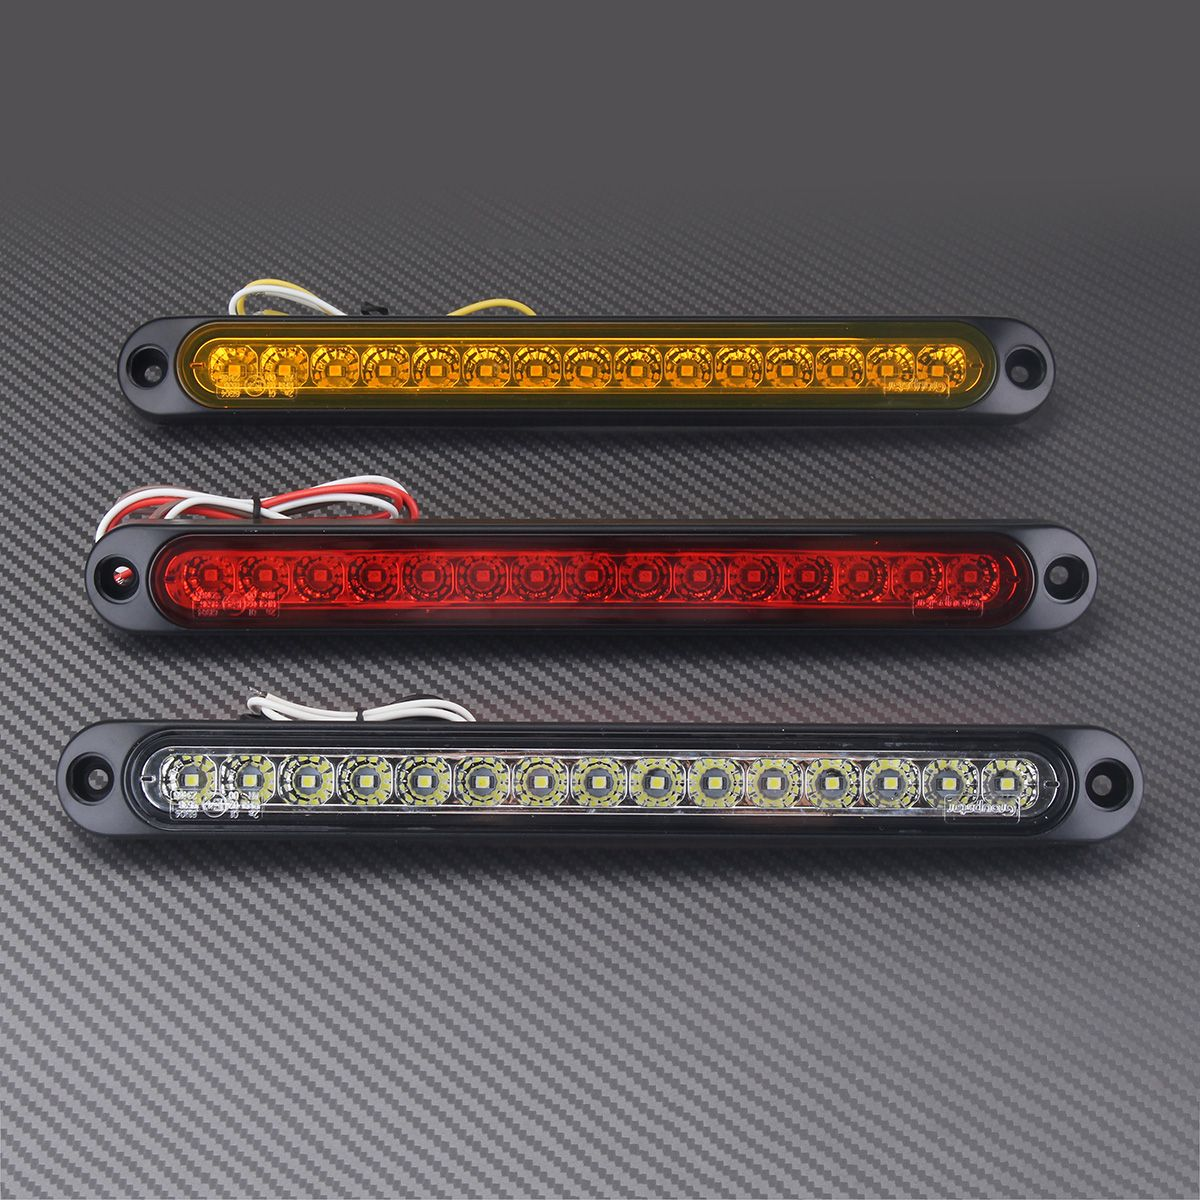 Dc10 30v Ultra Slim 15 Led Car Tail Light Stop Reverse Lamp Trailer Accessories Truck And Lights Super Bright Leds For